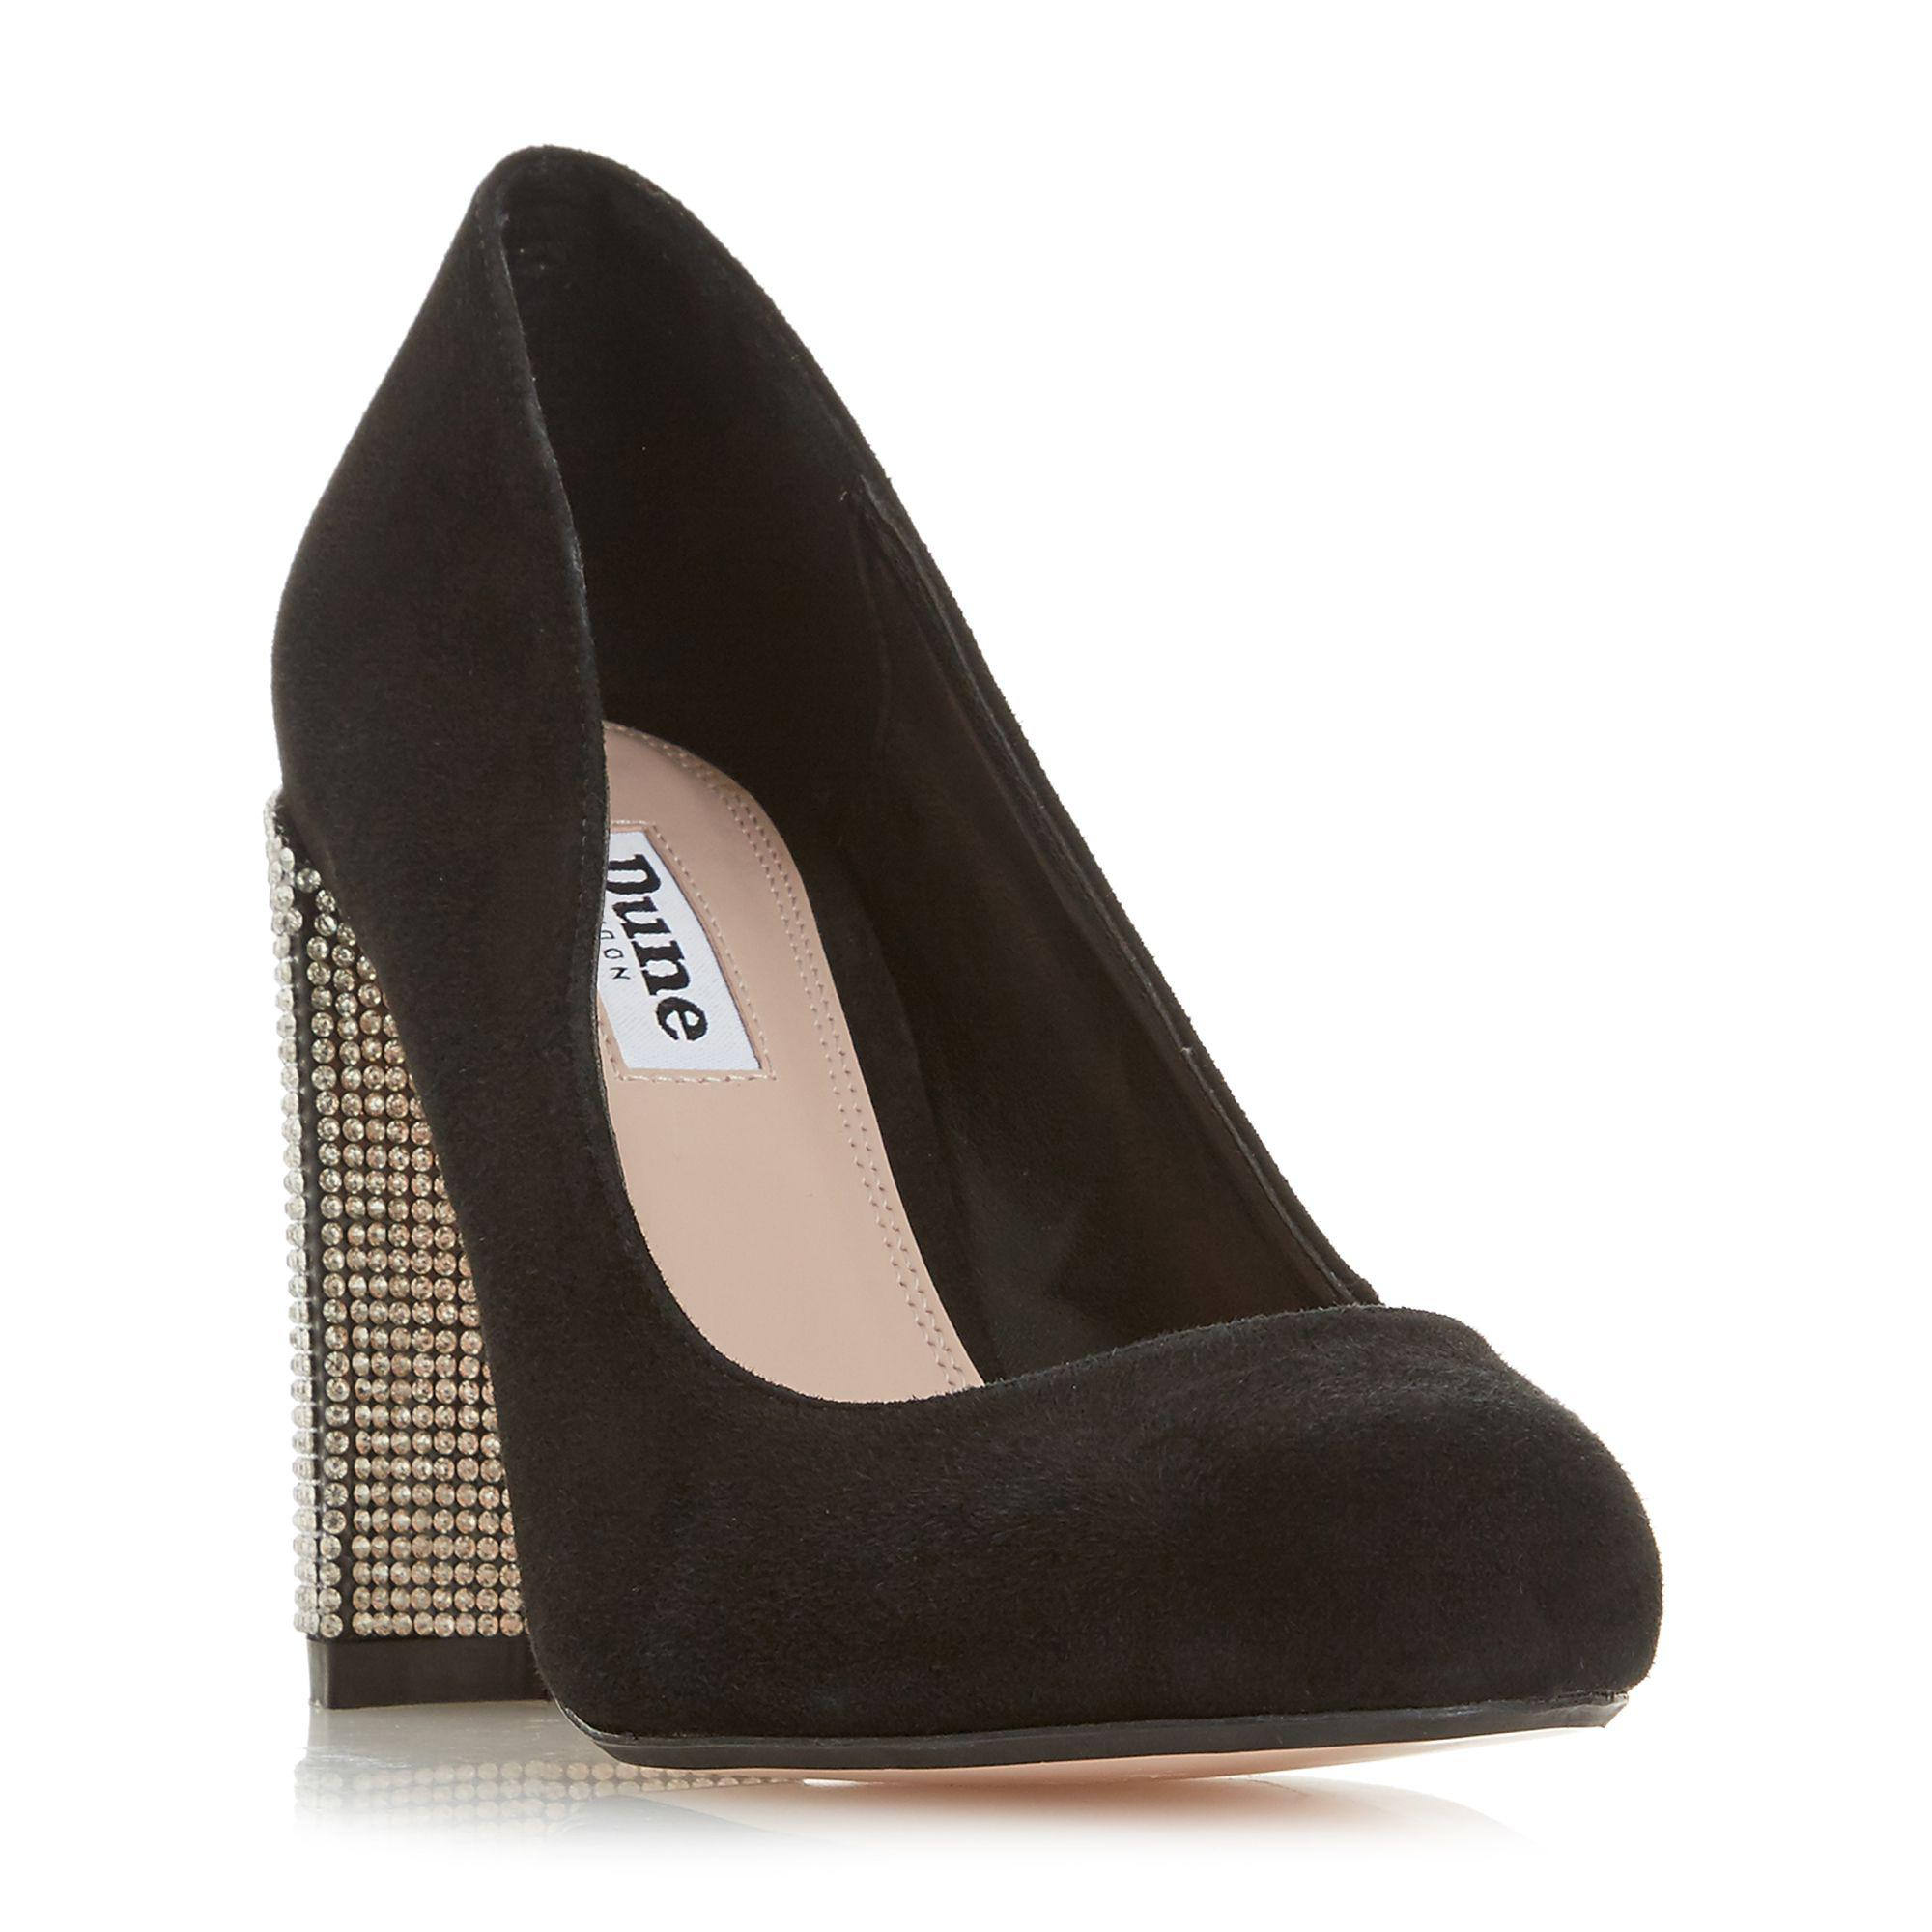 f9d7ae7feb417d ... Dune - Black Suede bling Court Shoes - Lyst. View Fullscreen clearance  prices 77547 a41f6 ...